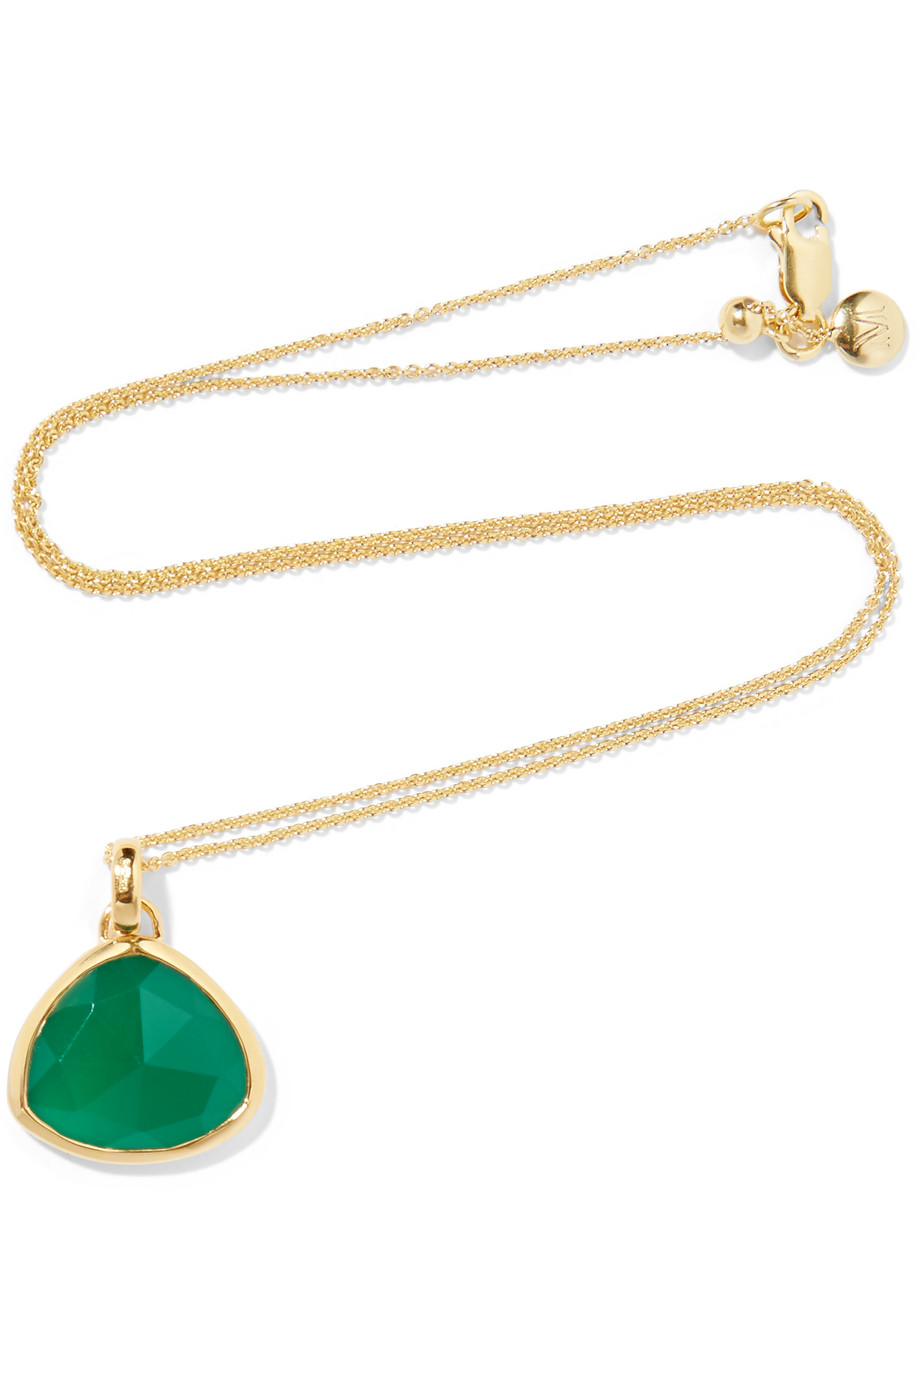 Monica Vinader Siren Gold-Plated Onyx Necklace, Gold/Green, Women's